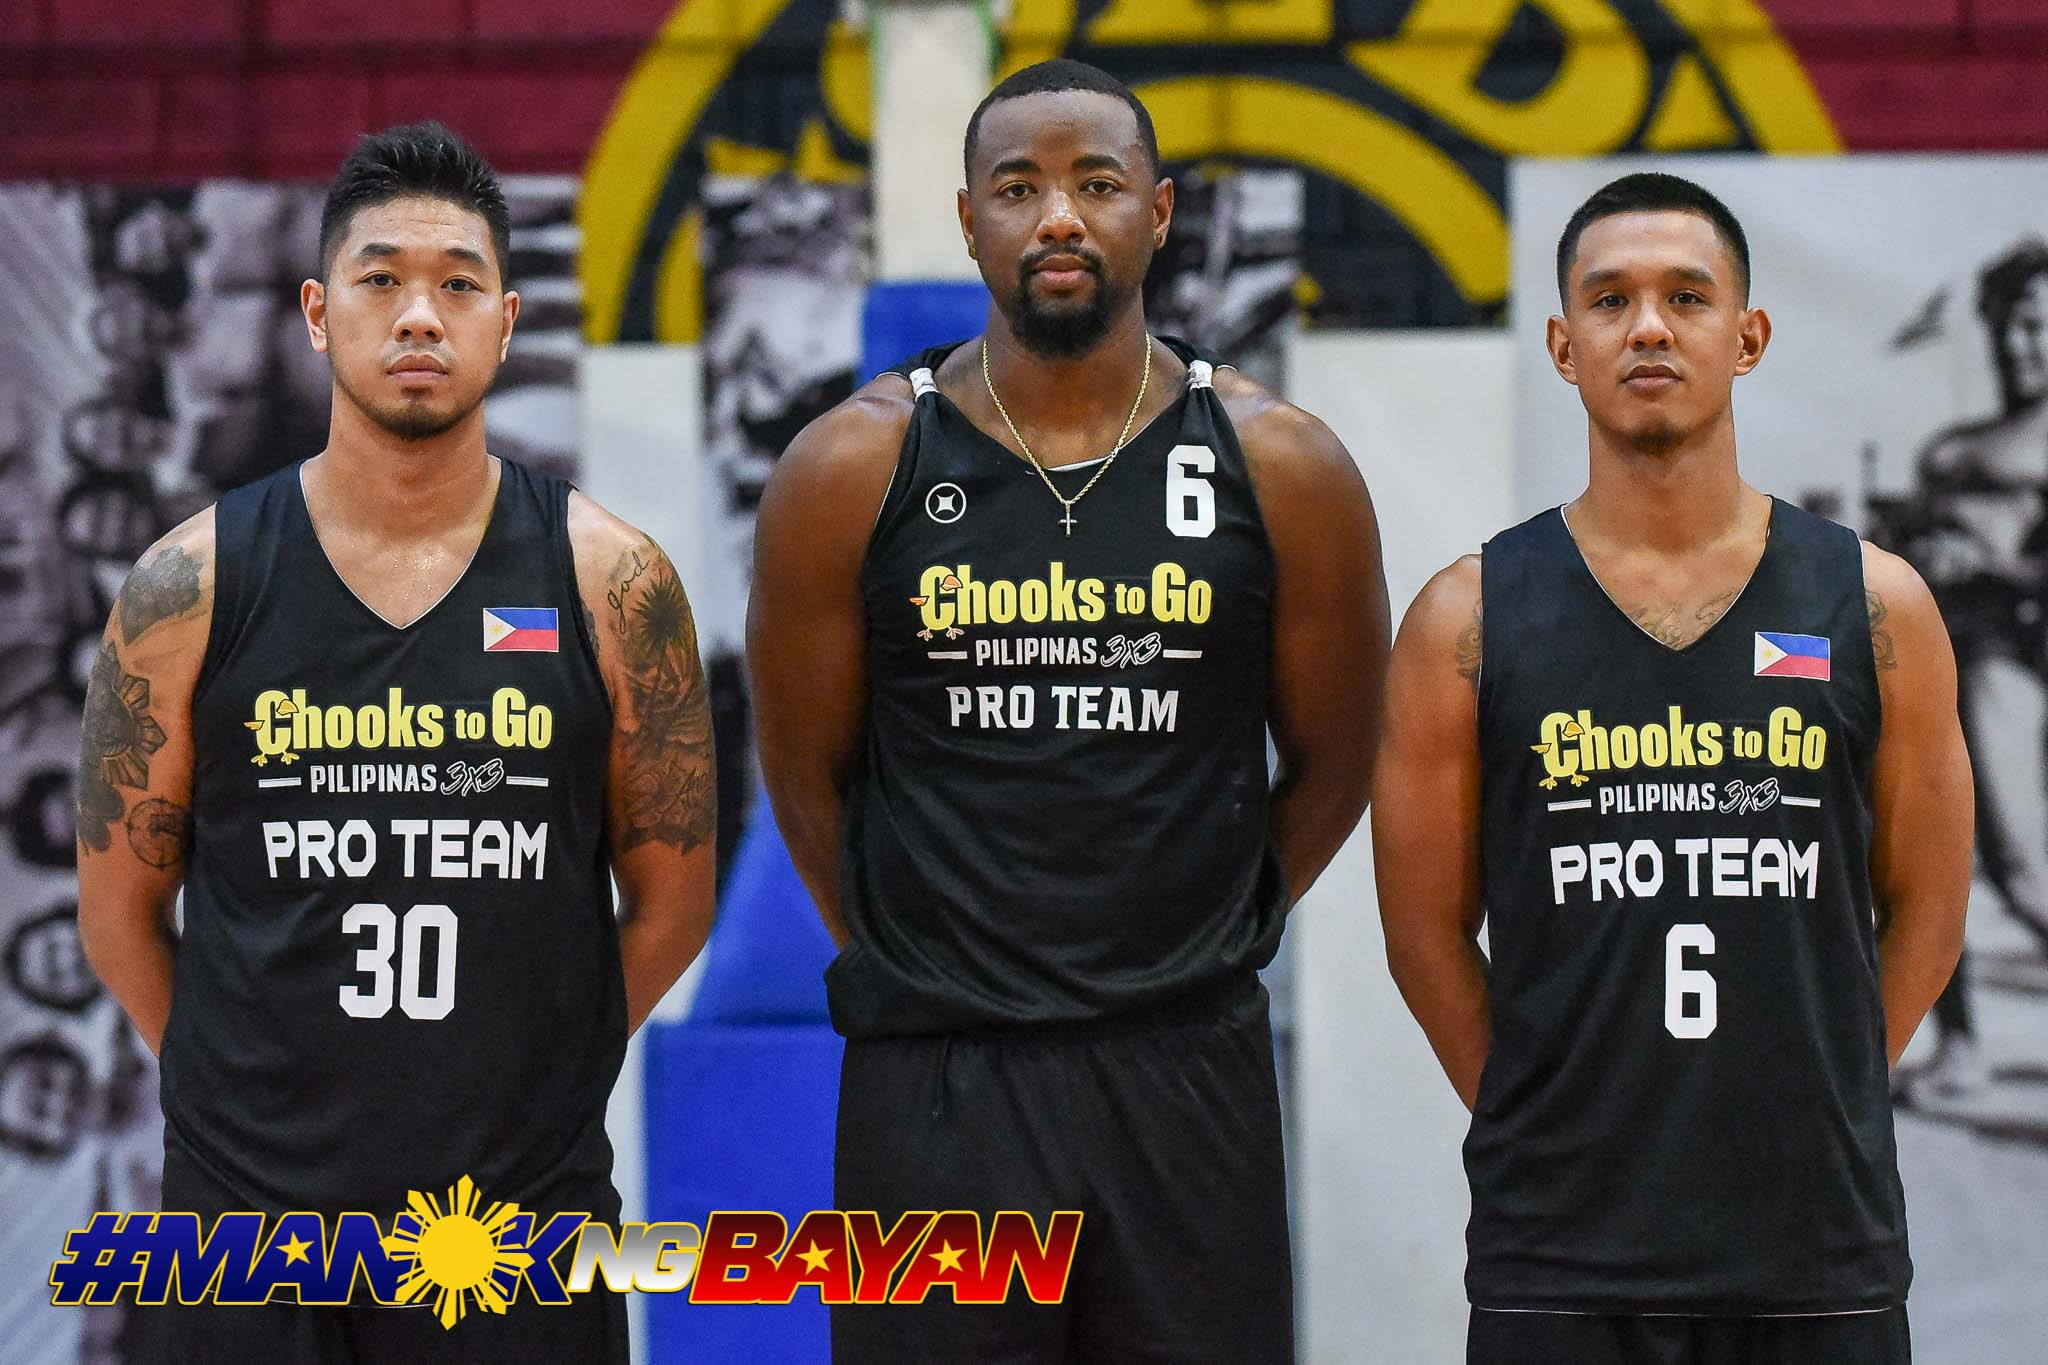 Tiebreaker Times Balanga's Alvin Pasaol to miss Bucharest Challenger due to visa issues 3x3 Basketball Chooks-to-Go Pilipinas 3x3 News  Karl Dehesa Chris De Chavez Balanga Chooks Alvin Pasaol 2019 Chooks-to-Go Pilipinas 3x3 Season 2019 Bucharest Challenger